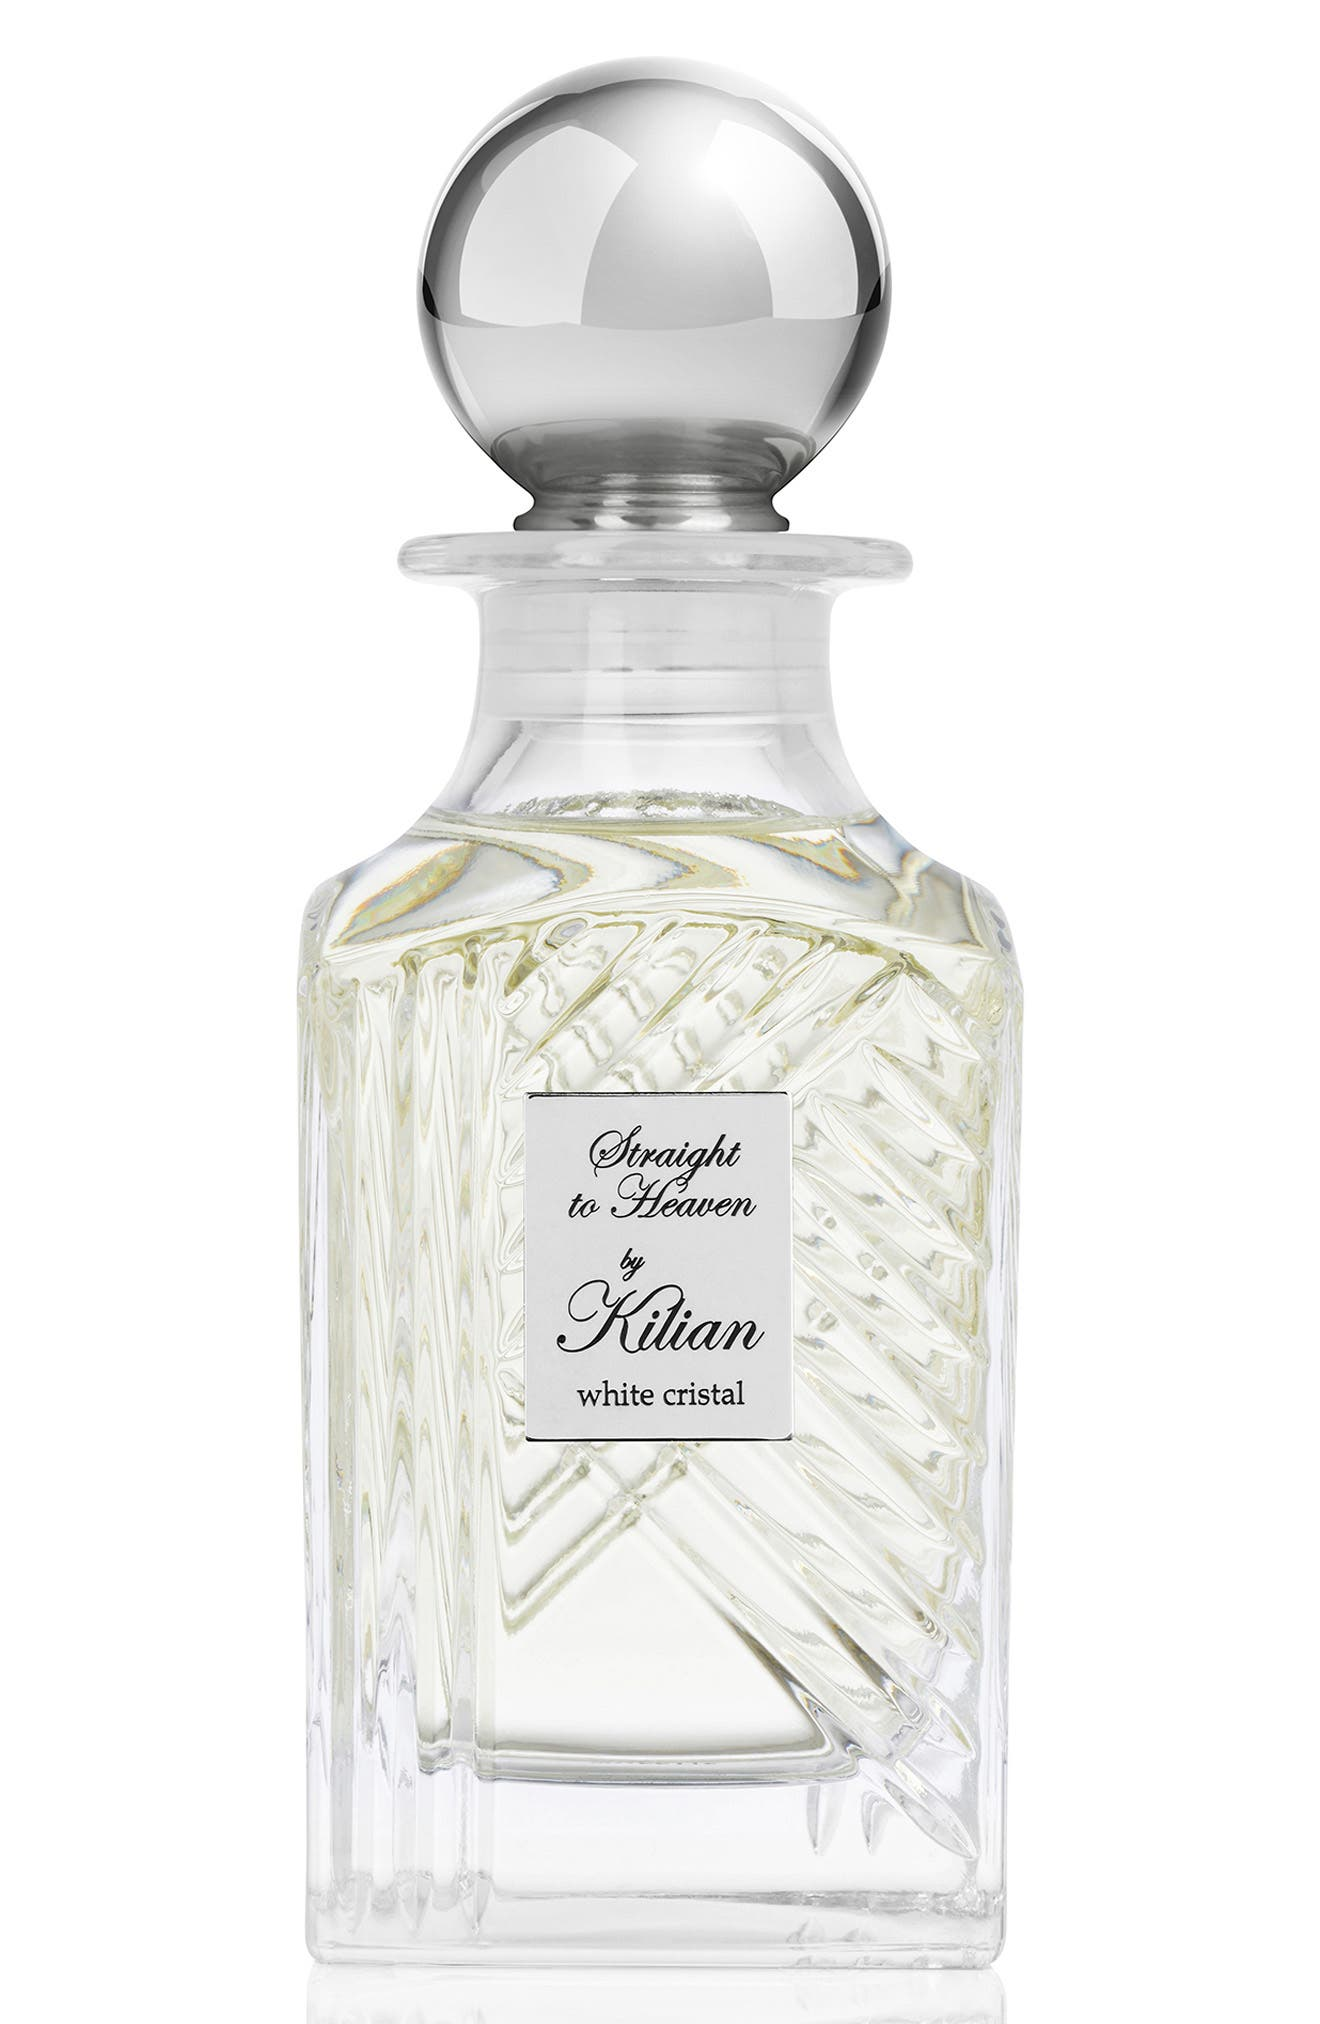 'L'Oeuvre Noire - Straight to Heaven, white cristal' Mini Fragrance Carafe,                             Main thumbnail 1, color,                             NO COLOR